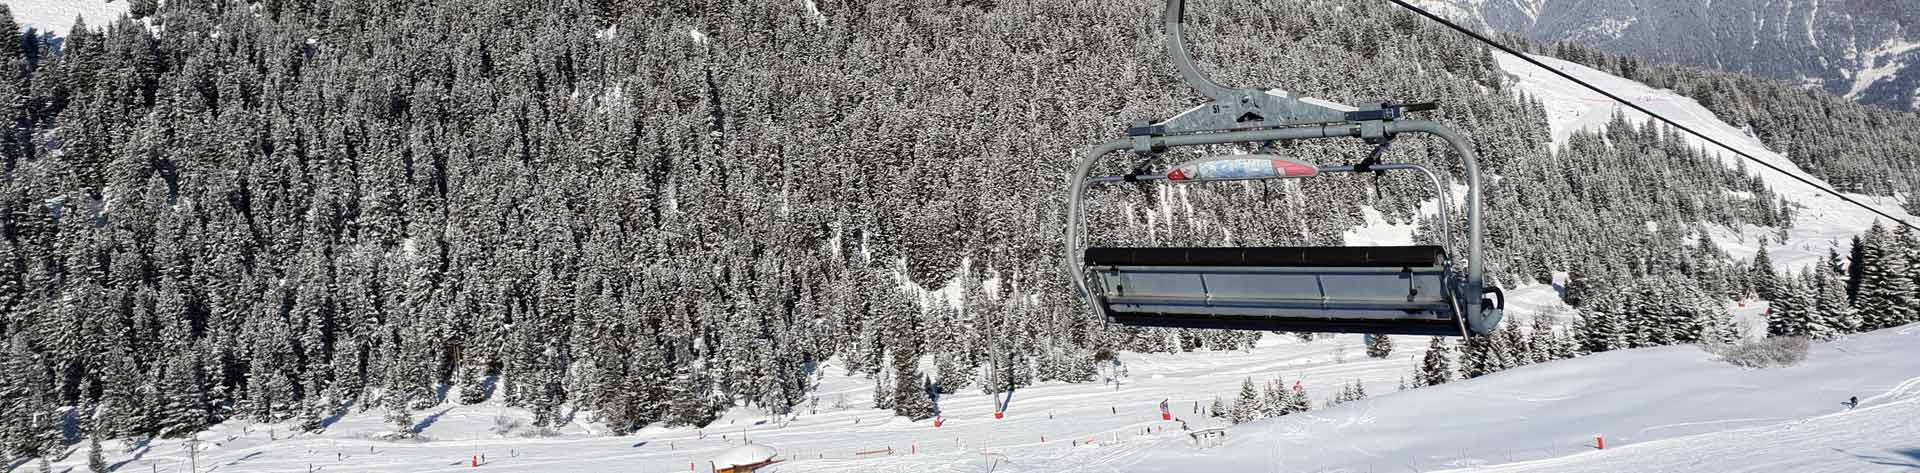 Ski Lift With Mountain And Trees In The Background